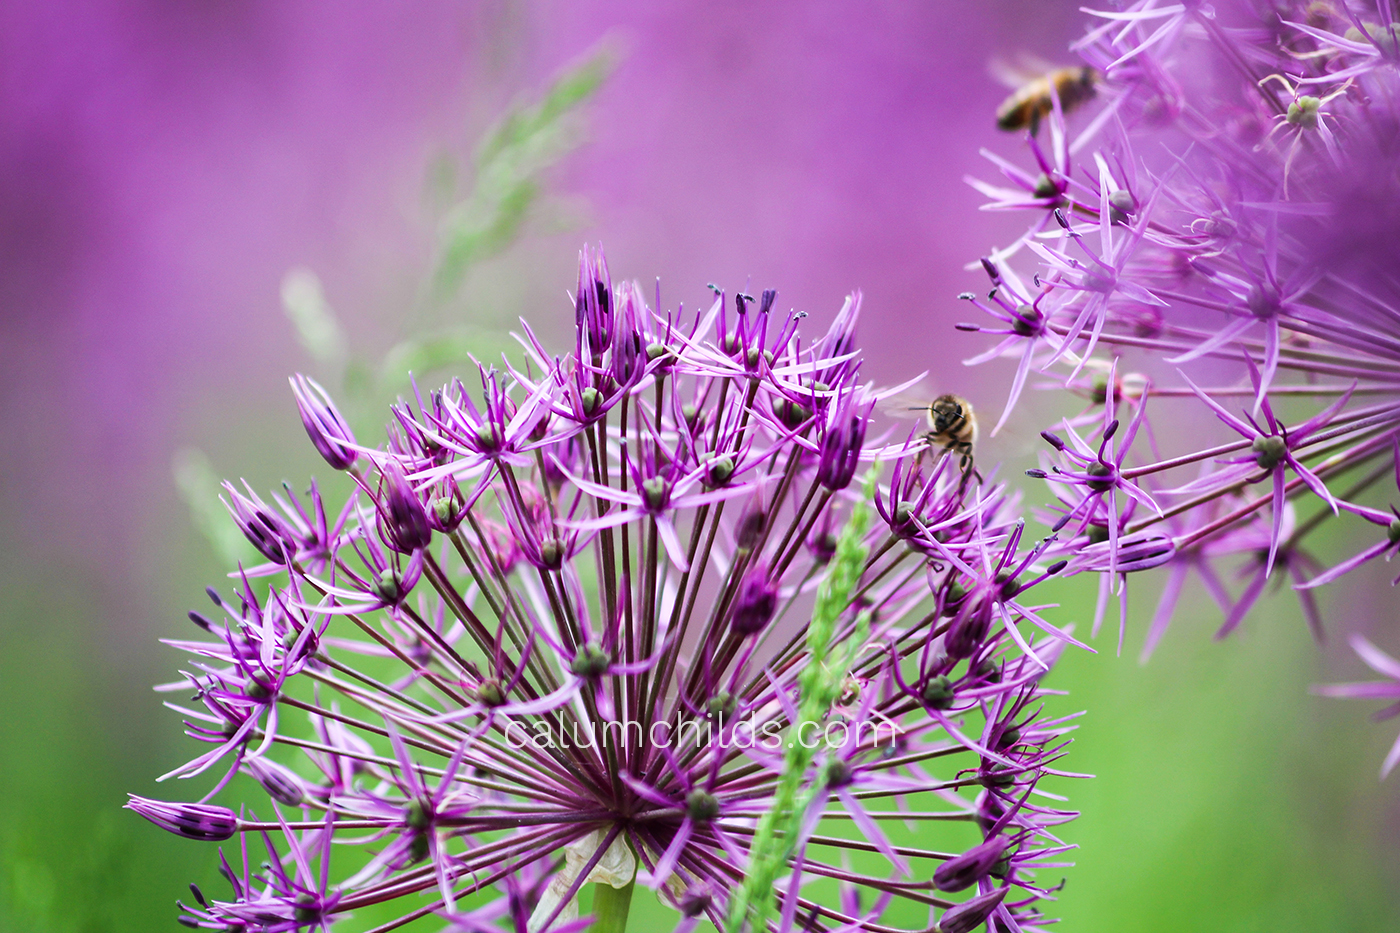 The head of an allium is surrounded by many others, which are being pollinated by bees.